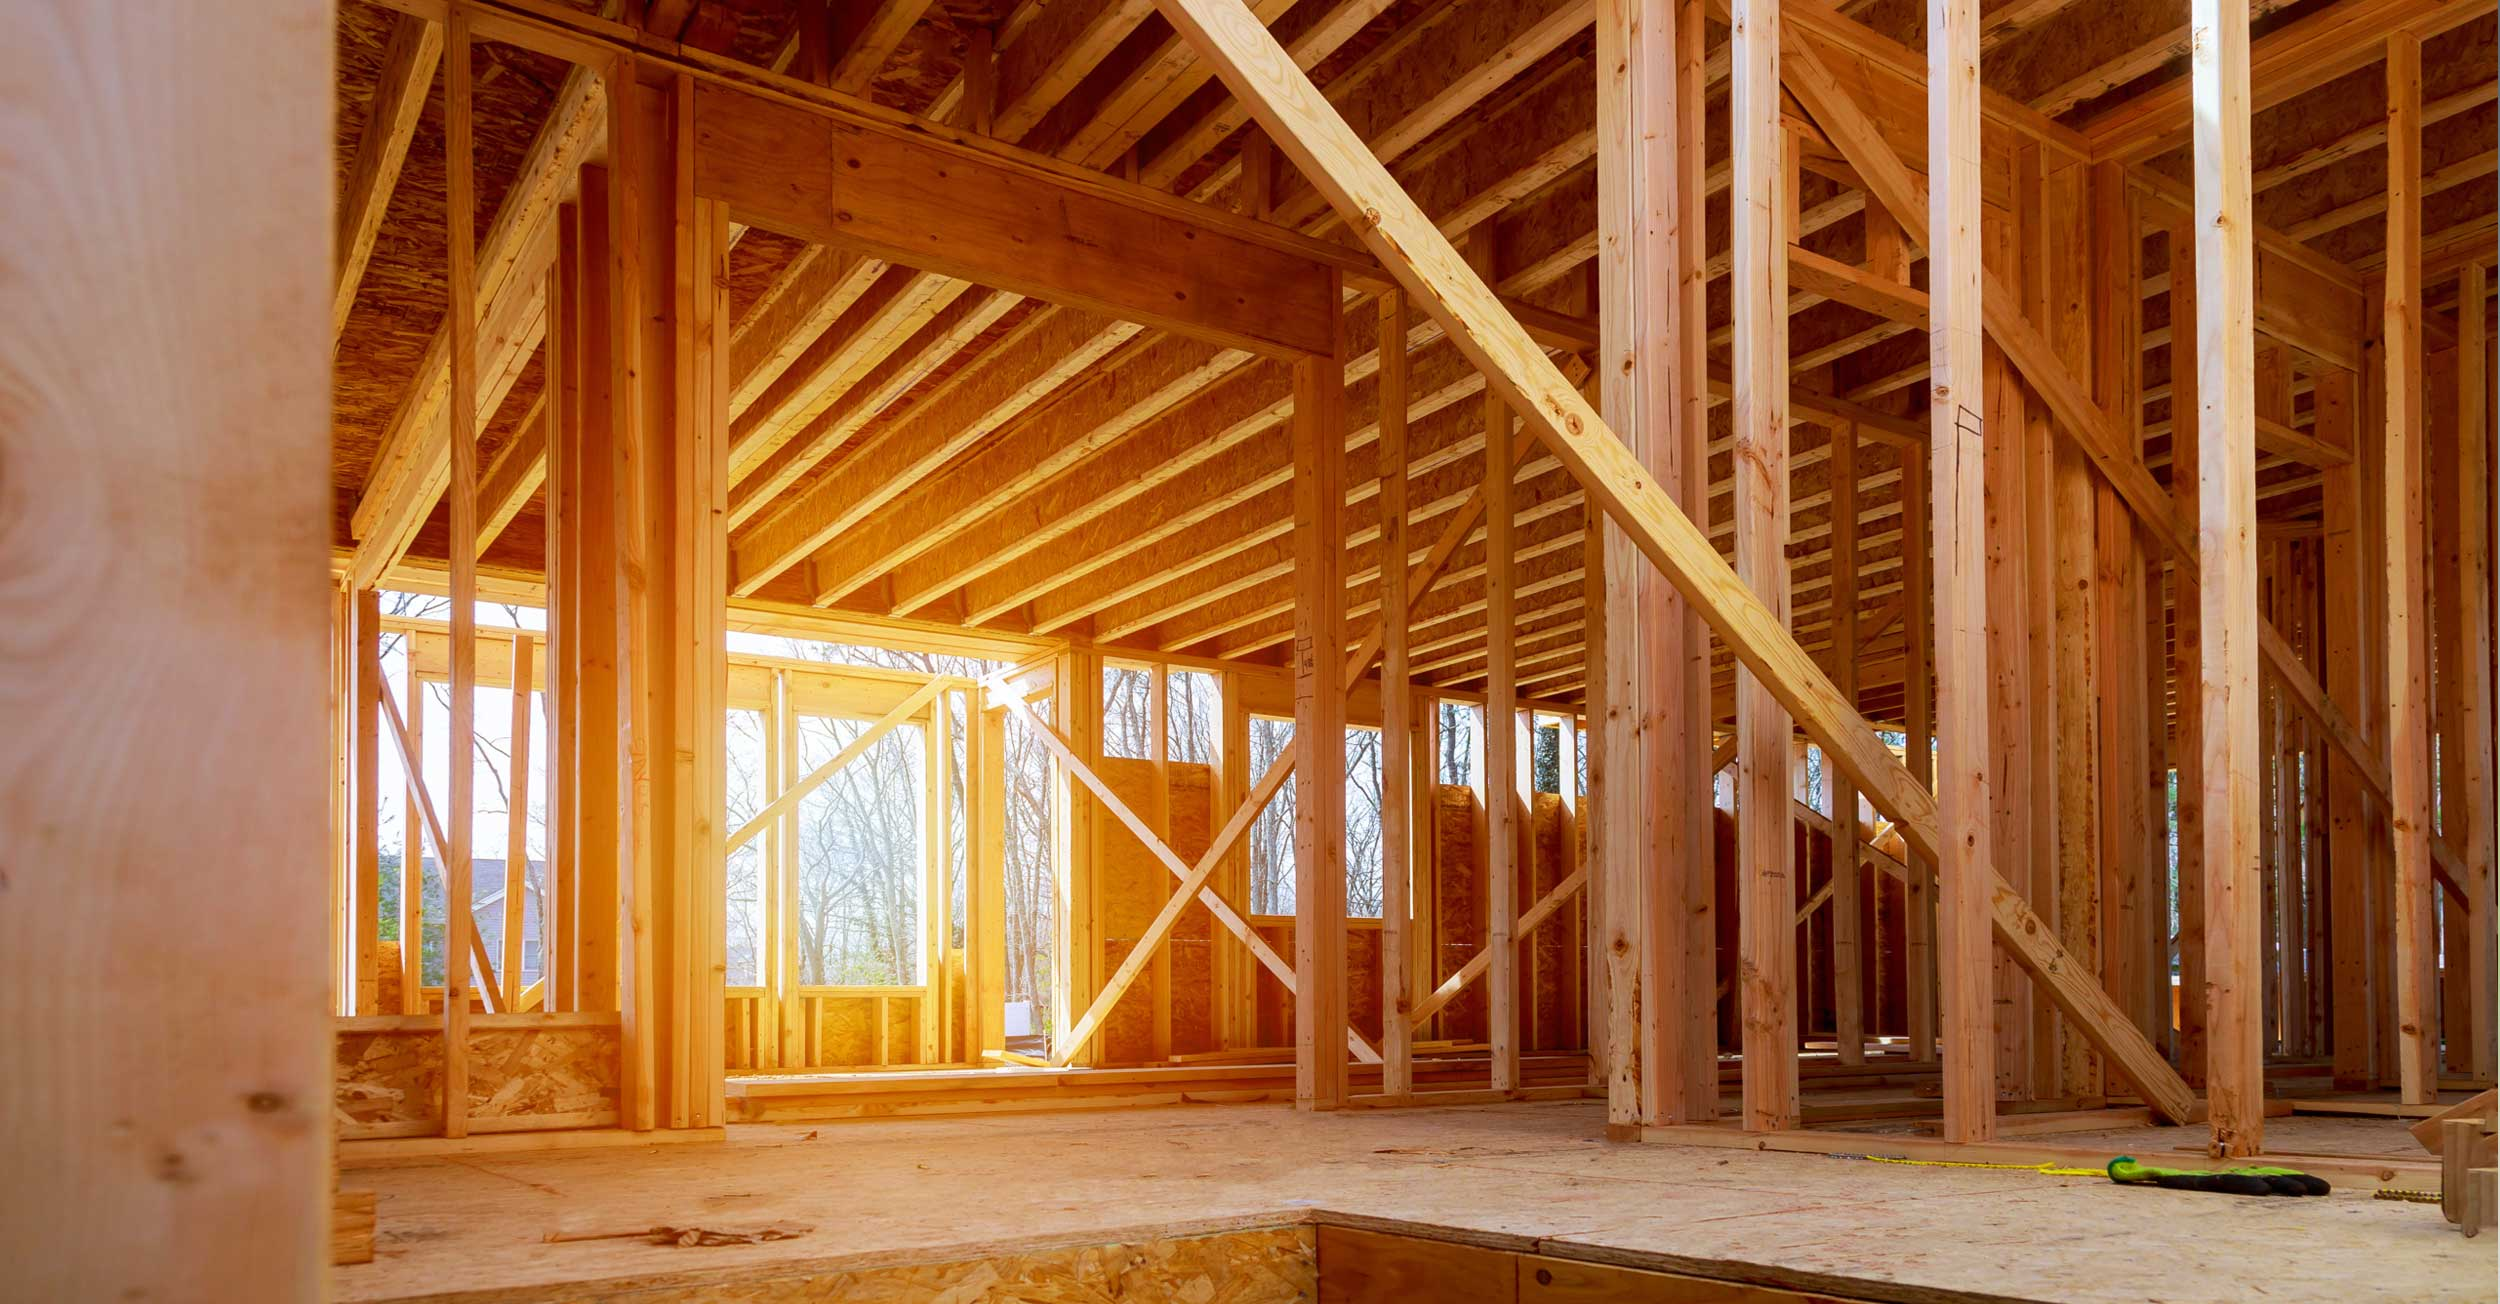 5 Tips to Extend Your Home With Greater Success and Less Stress